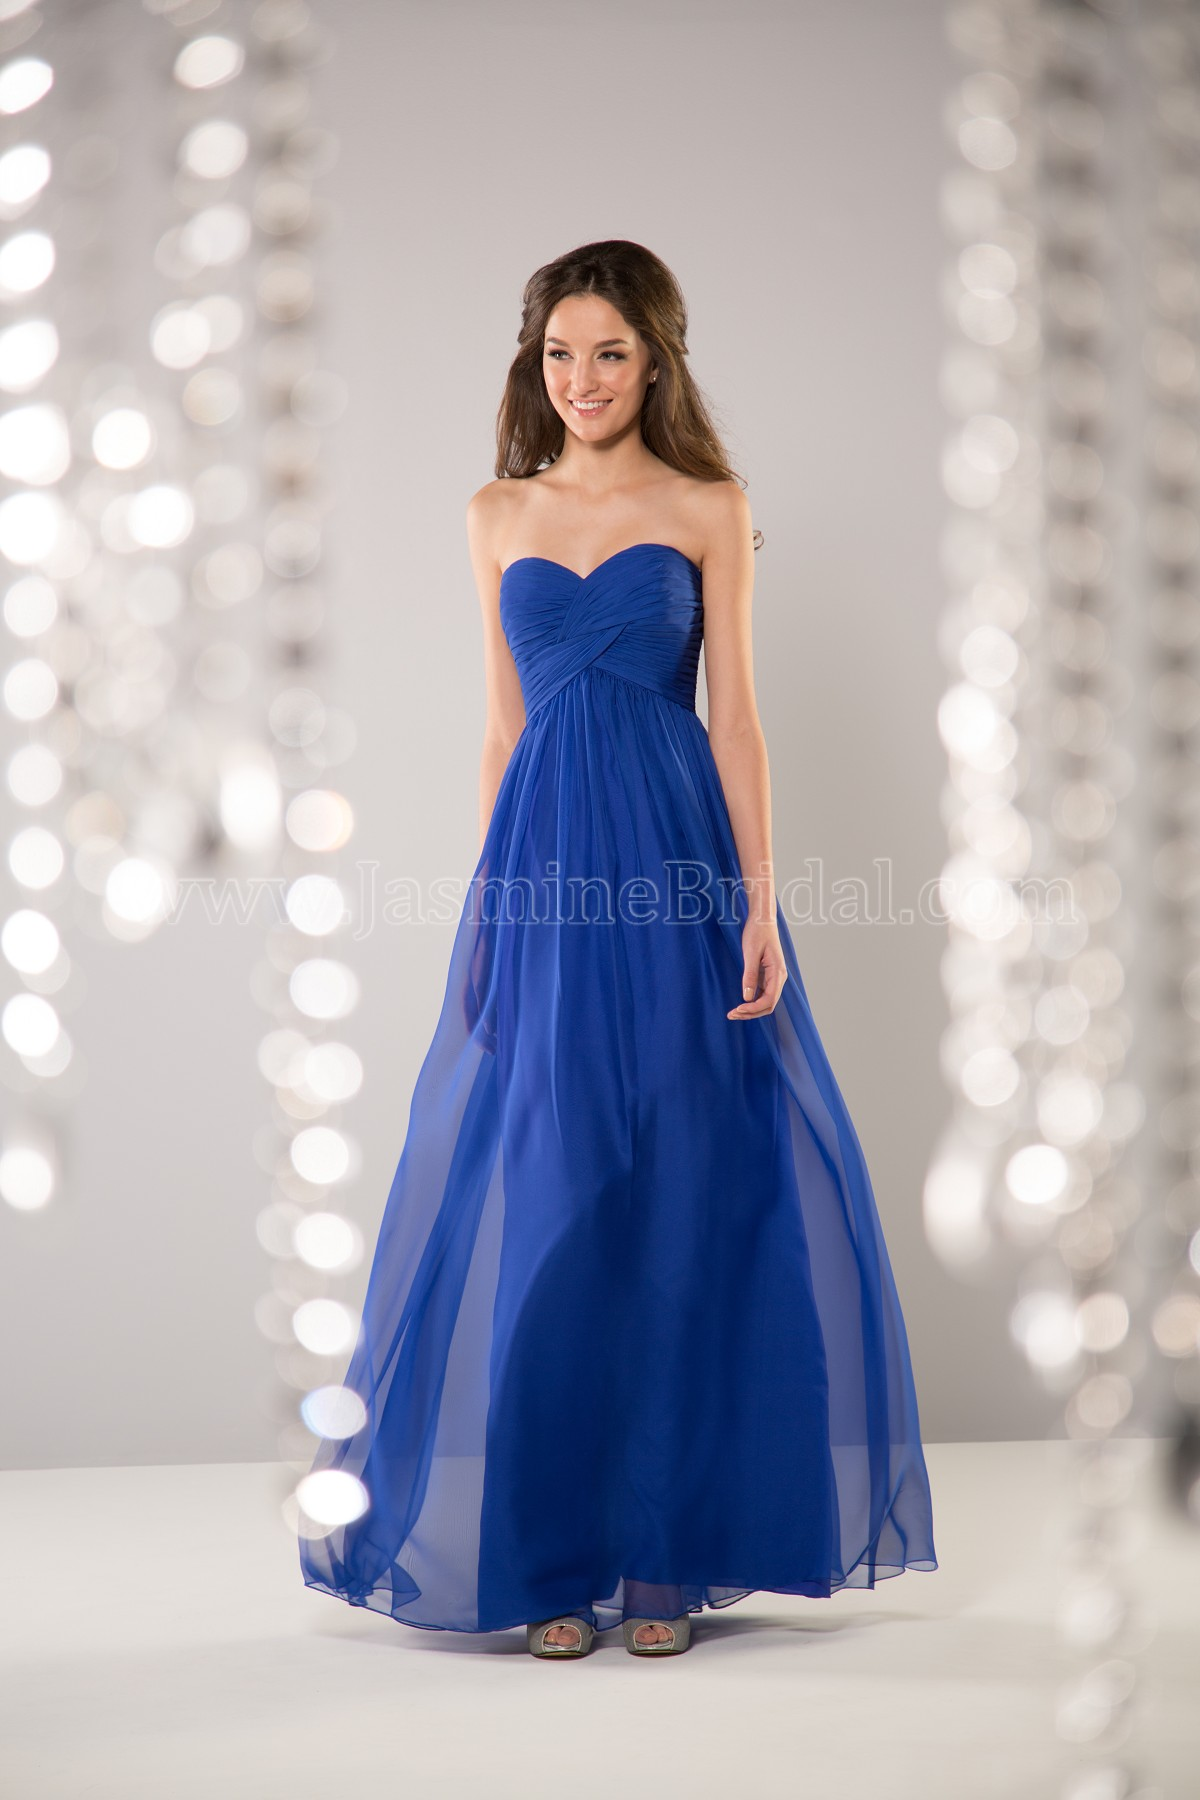 bridesmaid-dresses-B163060X-F